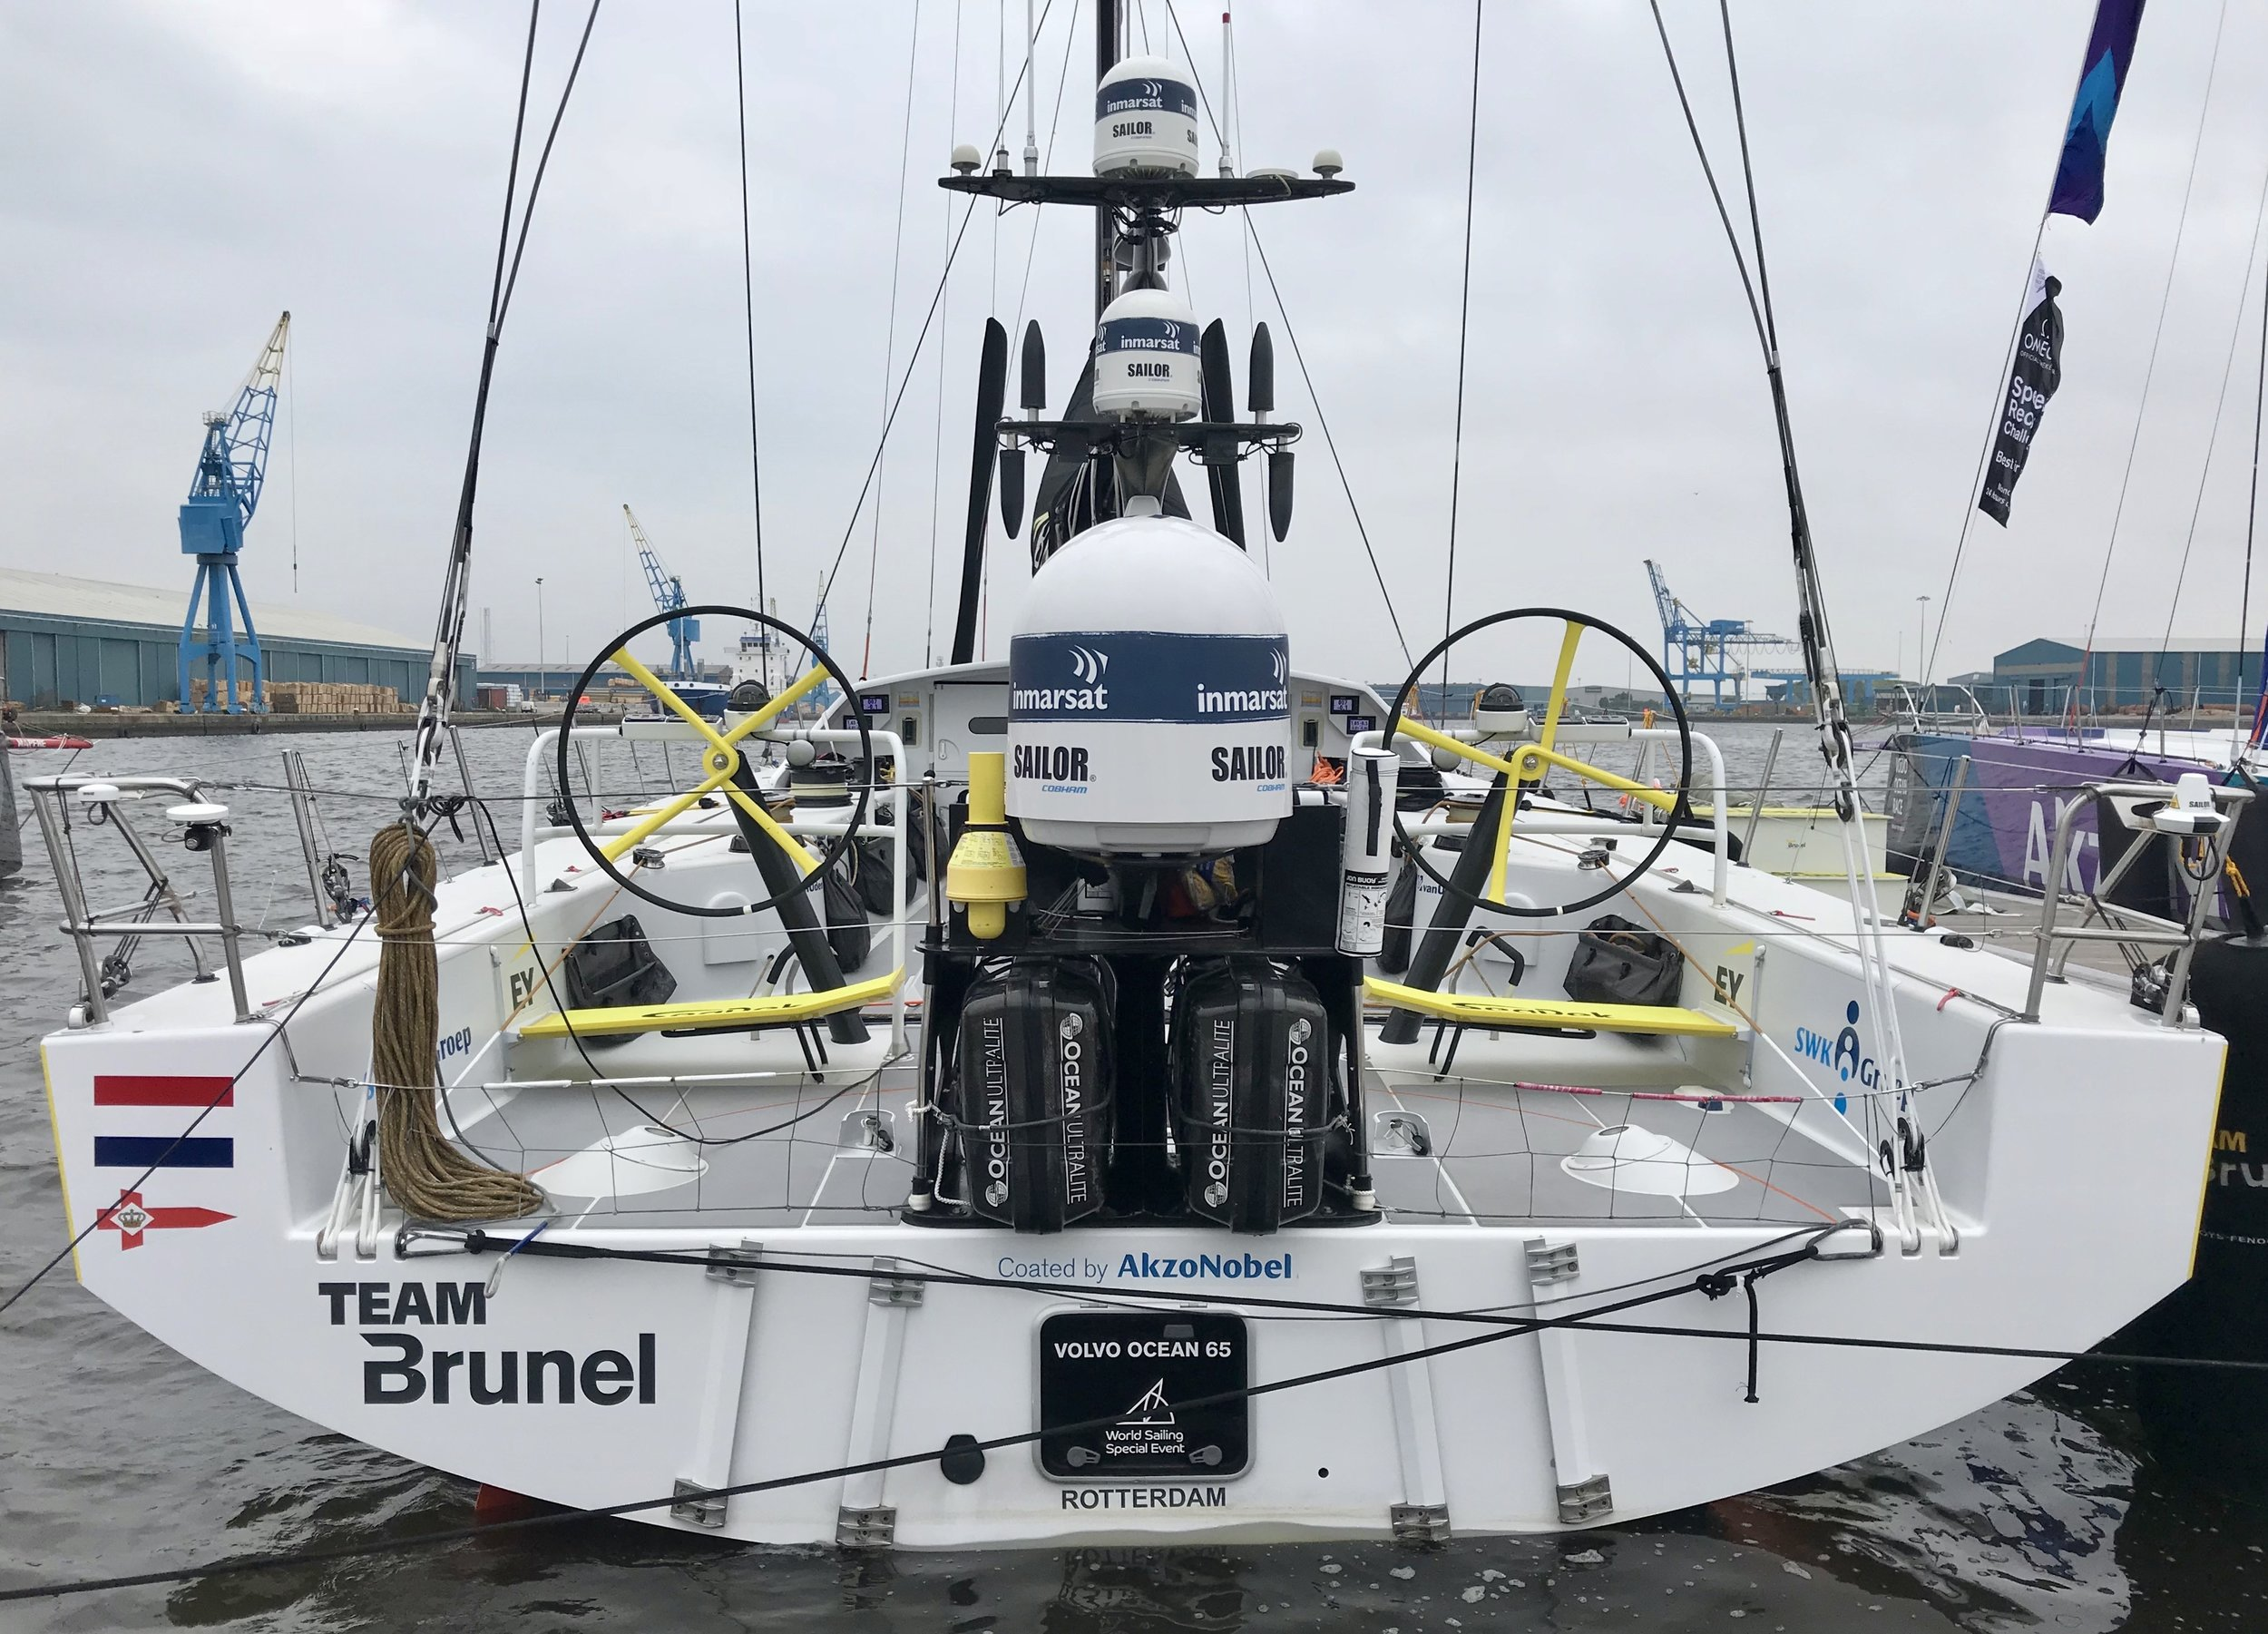 Volvo Round The World Yacht Race - Team Brunel's Boat - Cardiff 2018 - Ant Leake for Bluefin TV